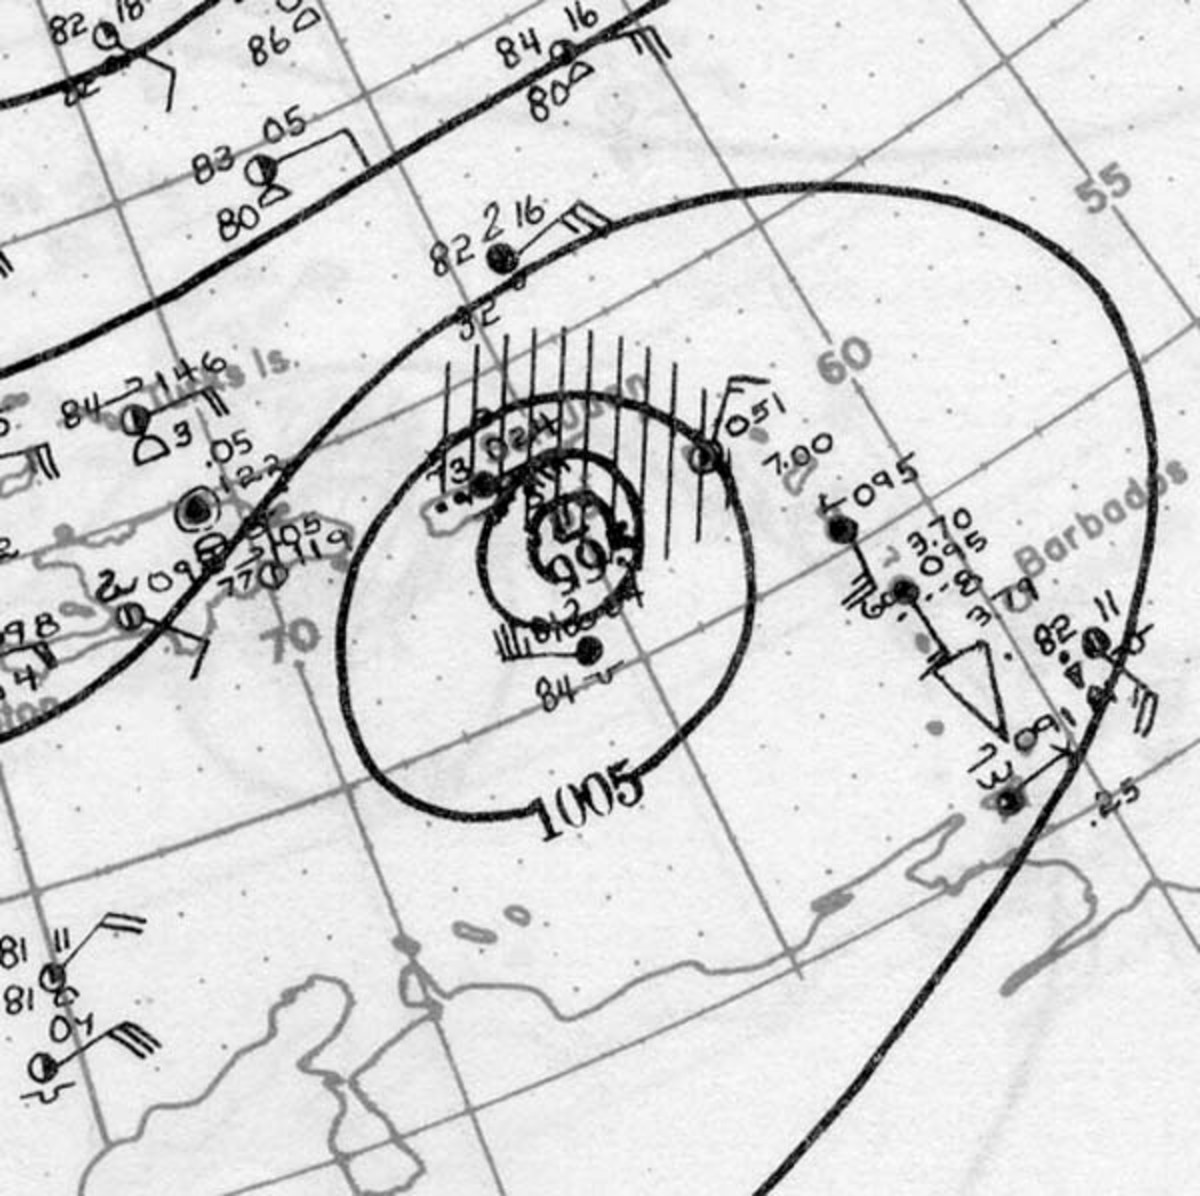 Category 5 Storms That Have Hit the US: The 1928 San Felipe II Hurricane or Okeechobee Hurricane